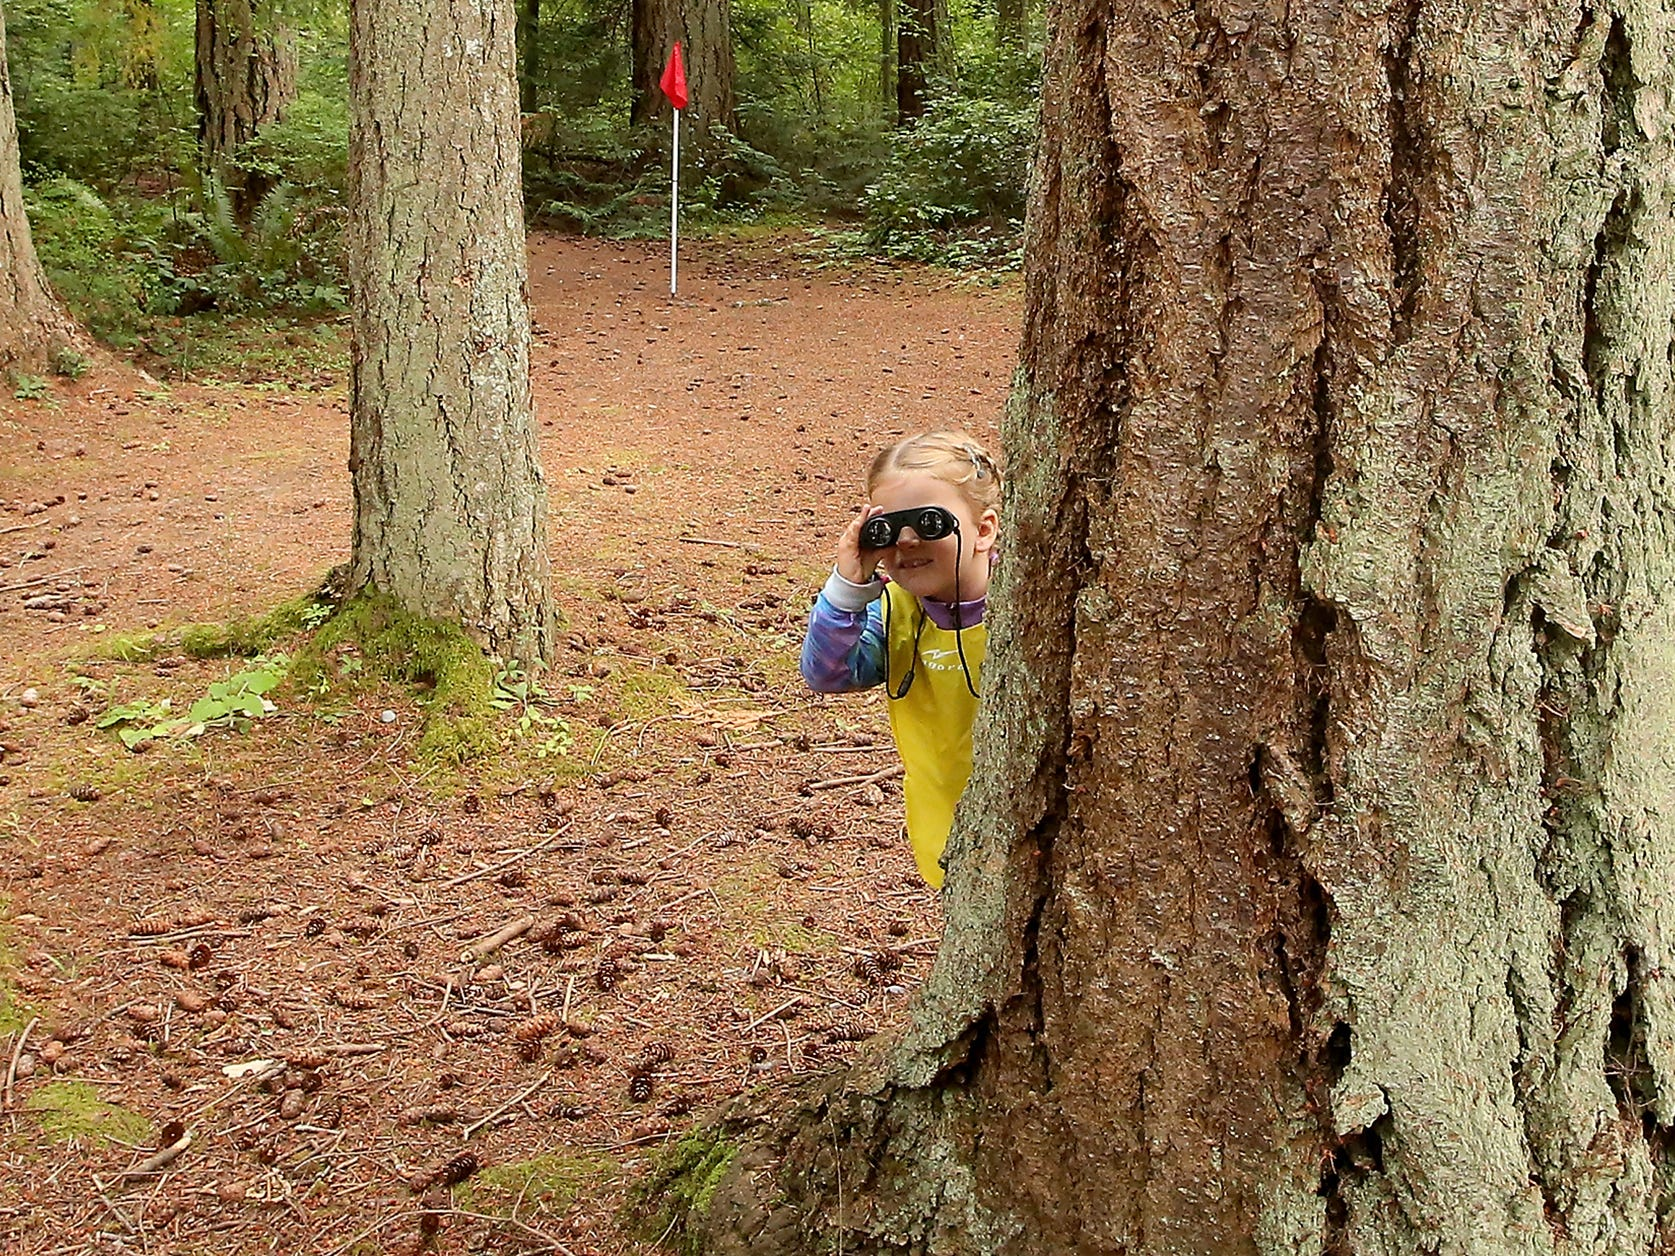 A camper hides behind a big tree and uses her binoculars during the Magnolia Forest Preschool camp at Kitsap Memorial Park in Poulsbo, Washington on Tuesday, July 10, 2018.